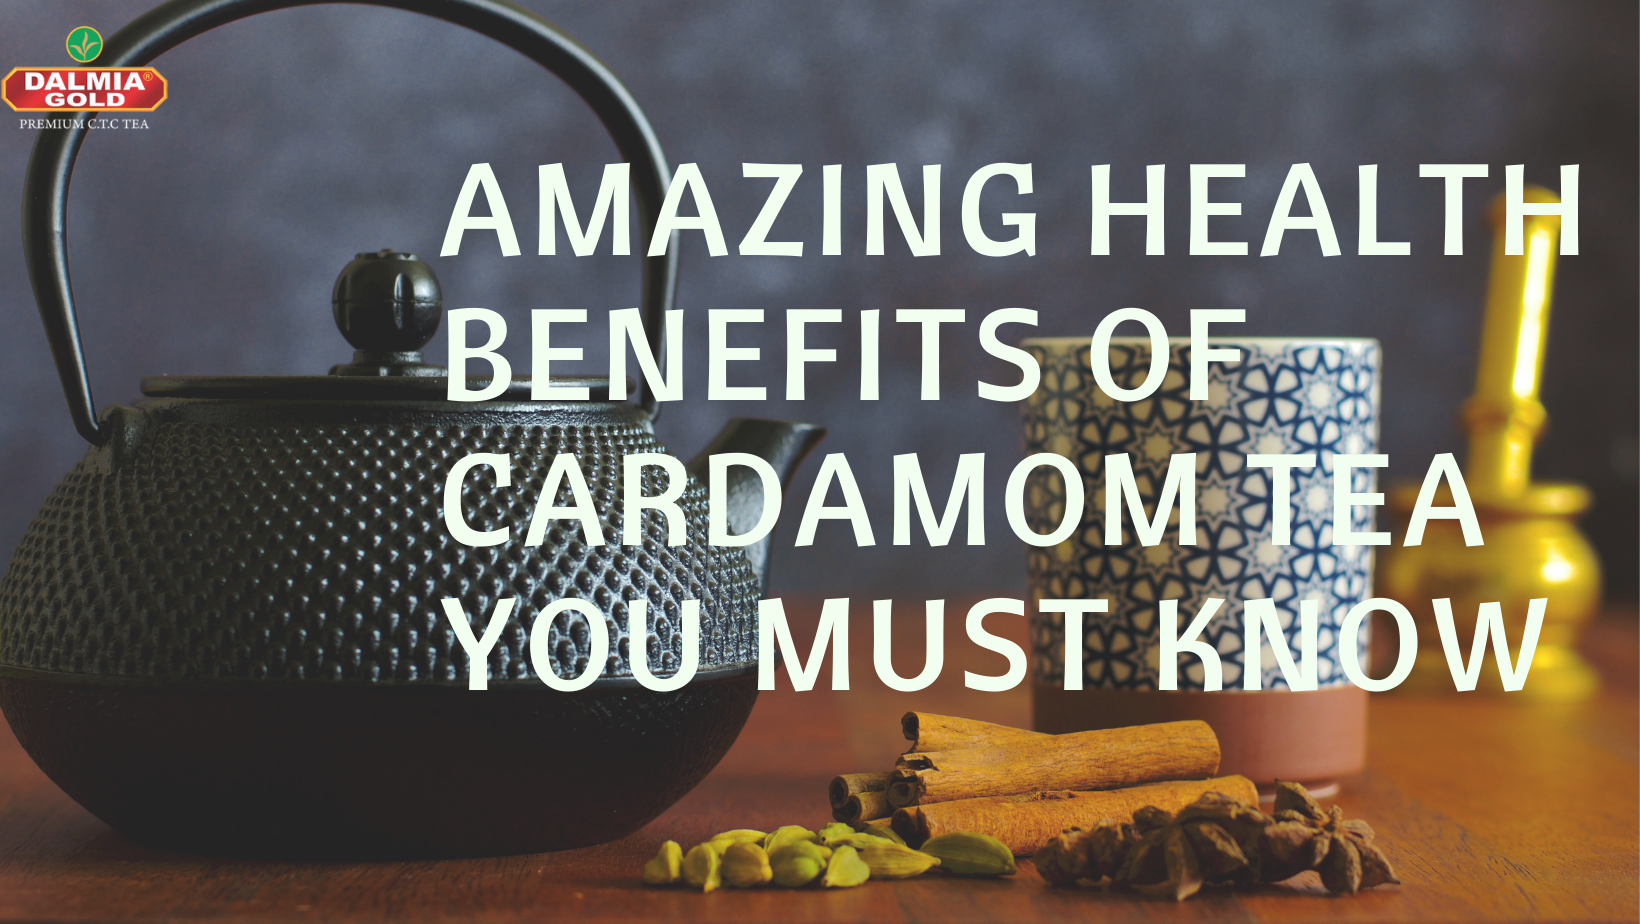 Amazing Health Benefits of Cardamom Tea You Must Know